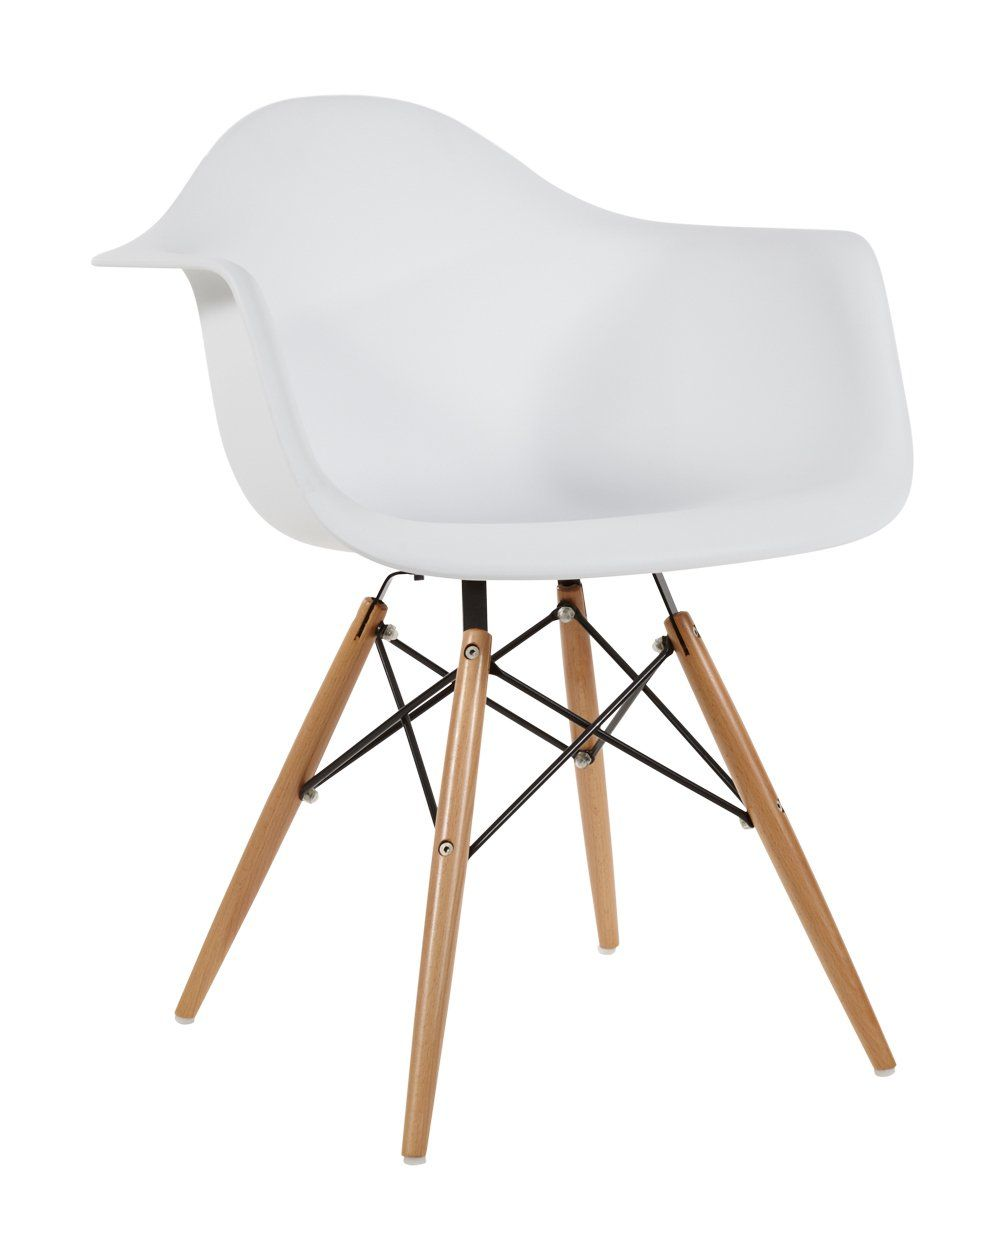 Charles Eames Style DAW Dining Chair Plastic - White: Amazon.co.uk: Kitchen & Home